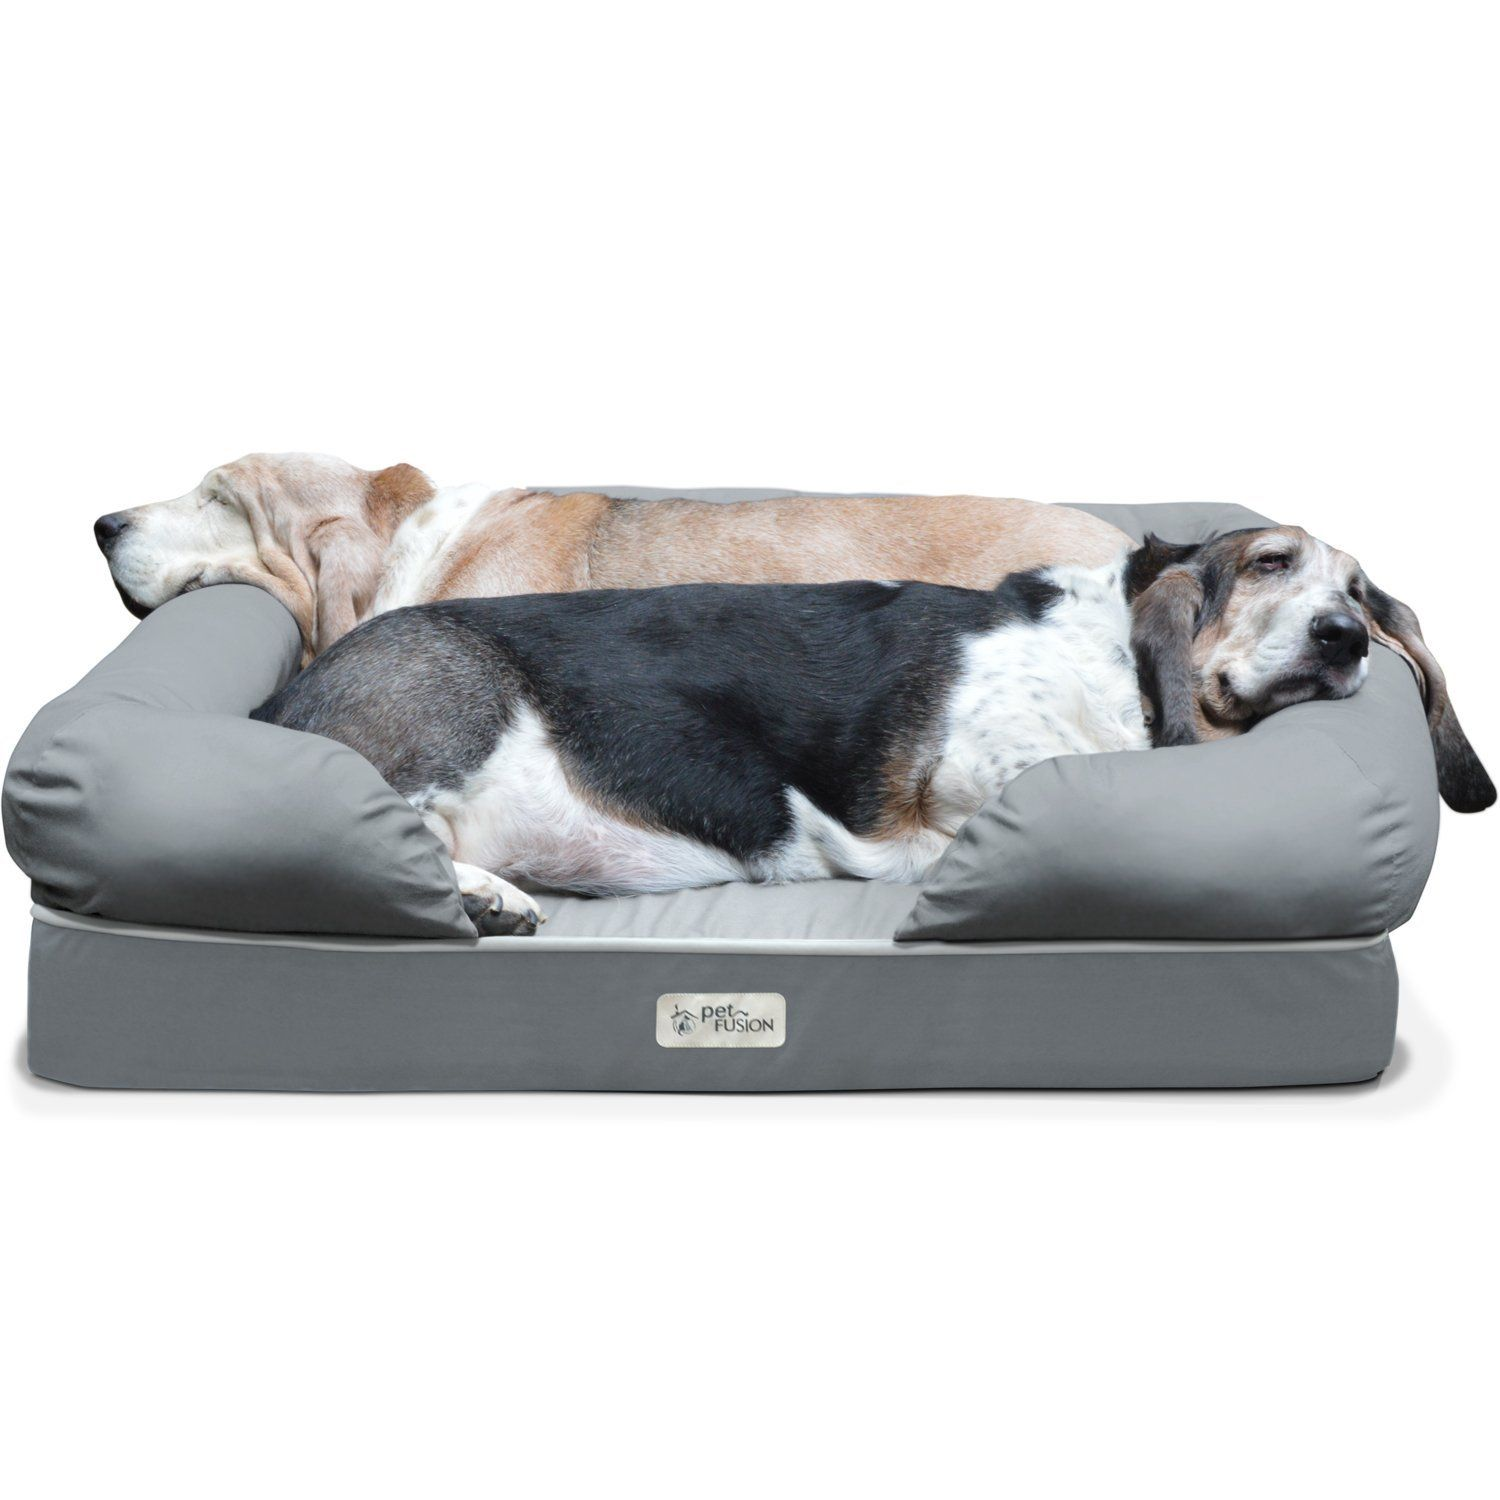 Sofas Para Perros Pequeños Dog Beds Pet Bed Best Dog Beds Best Seller Bed 2017 Food And